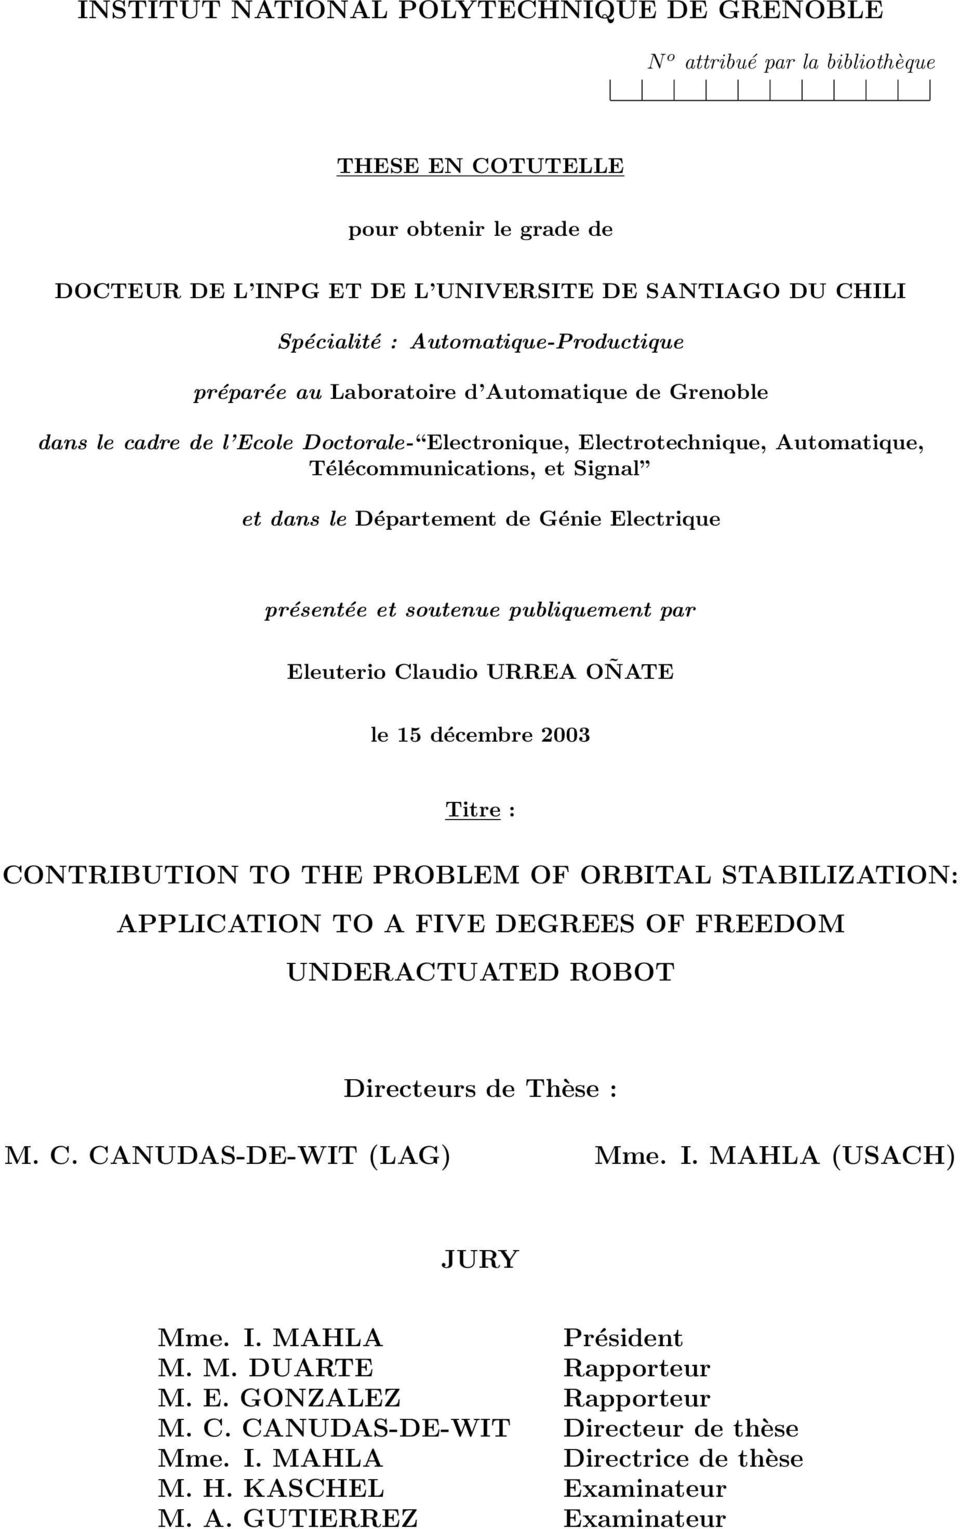 Département de Génie Electrique présentée et soutenue publiquement par Eleuterio Claudio URREA OÑATE le 15 décembre 2003 Titre : CONTRIBUTION TO THE PROBLEM OF ORBITAL STABILIZATION: APPLICATION TO A